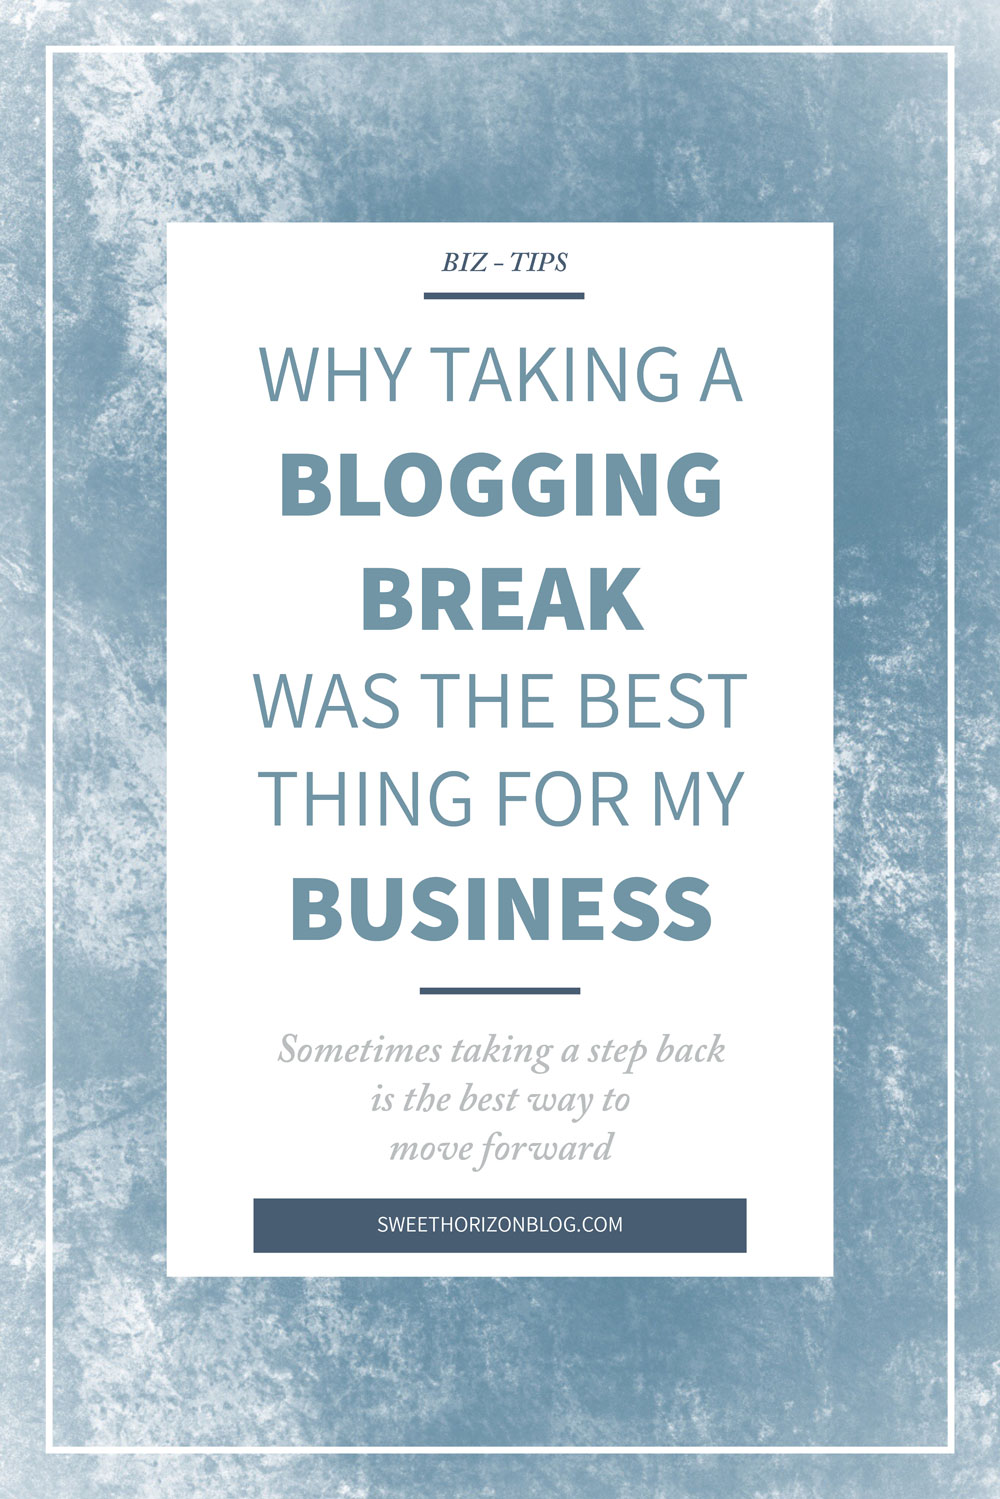 Why Taking a Blogging Break Was the Best Thing for My Business from www.sweethorizonblog.com